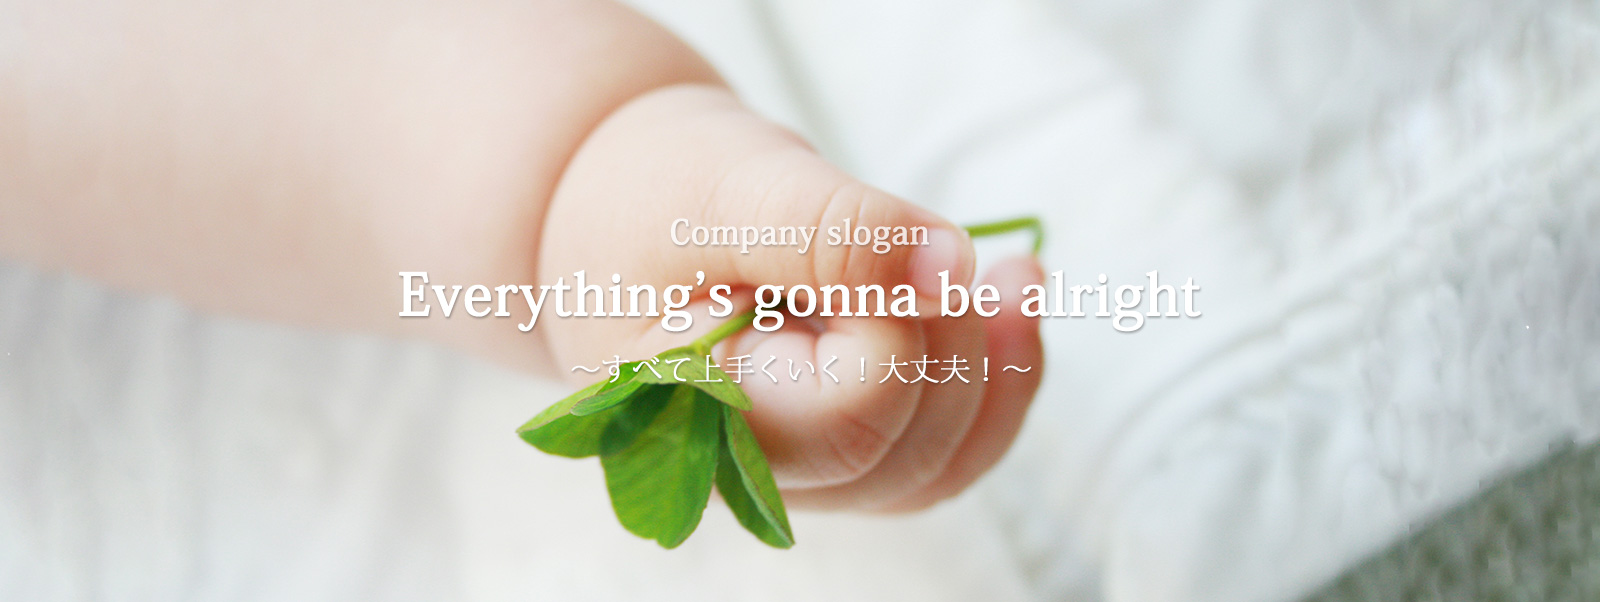 Company slogan Everything's gonna be alright すべて上手くいく!大丈夫!